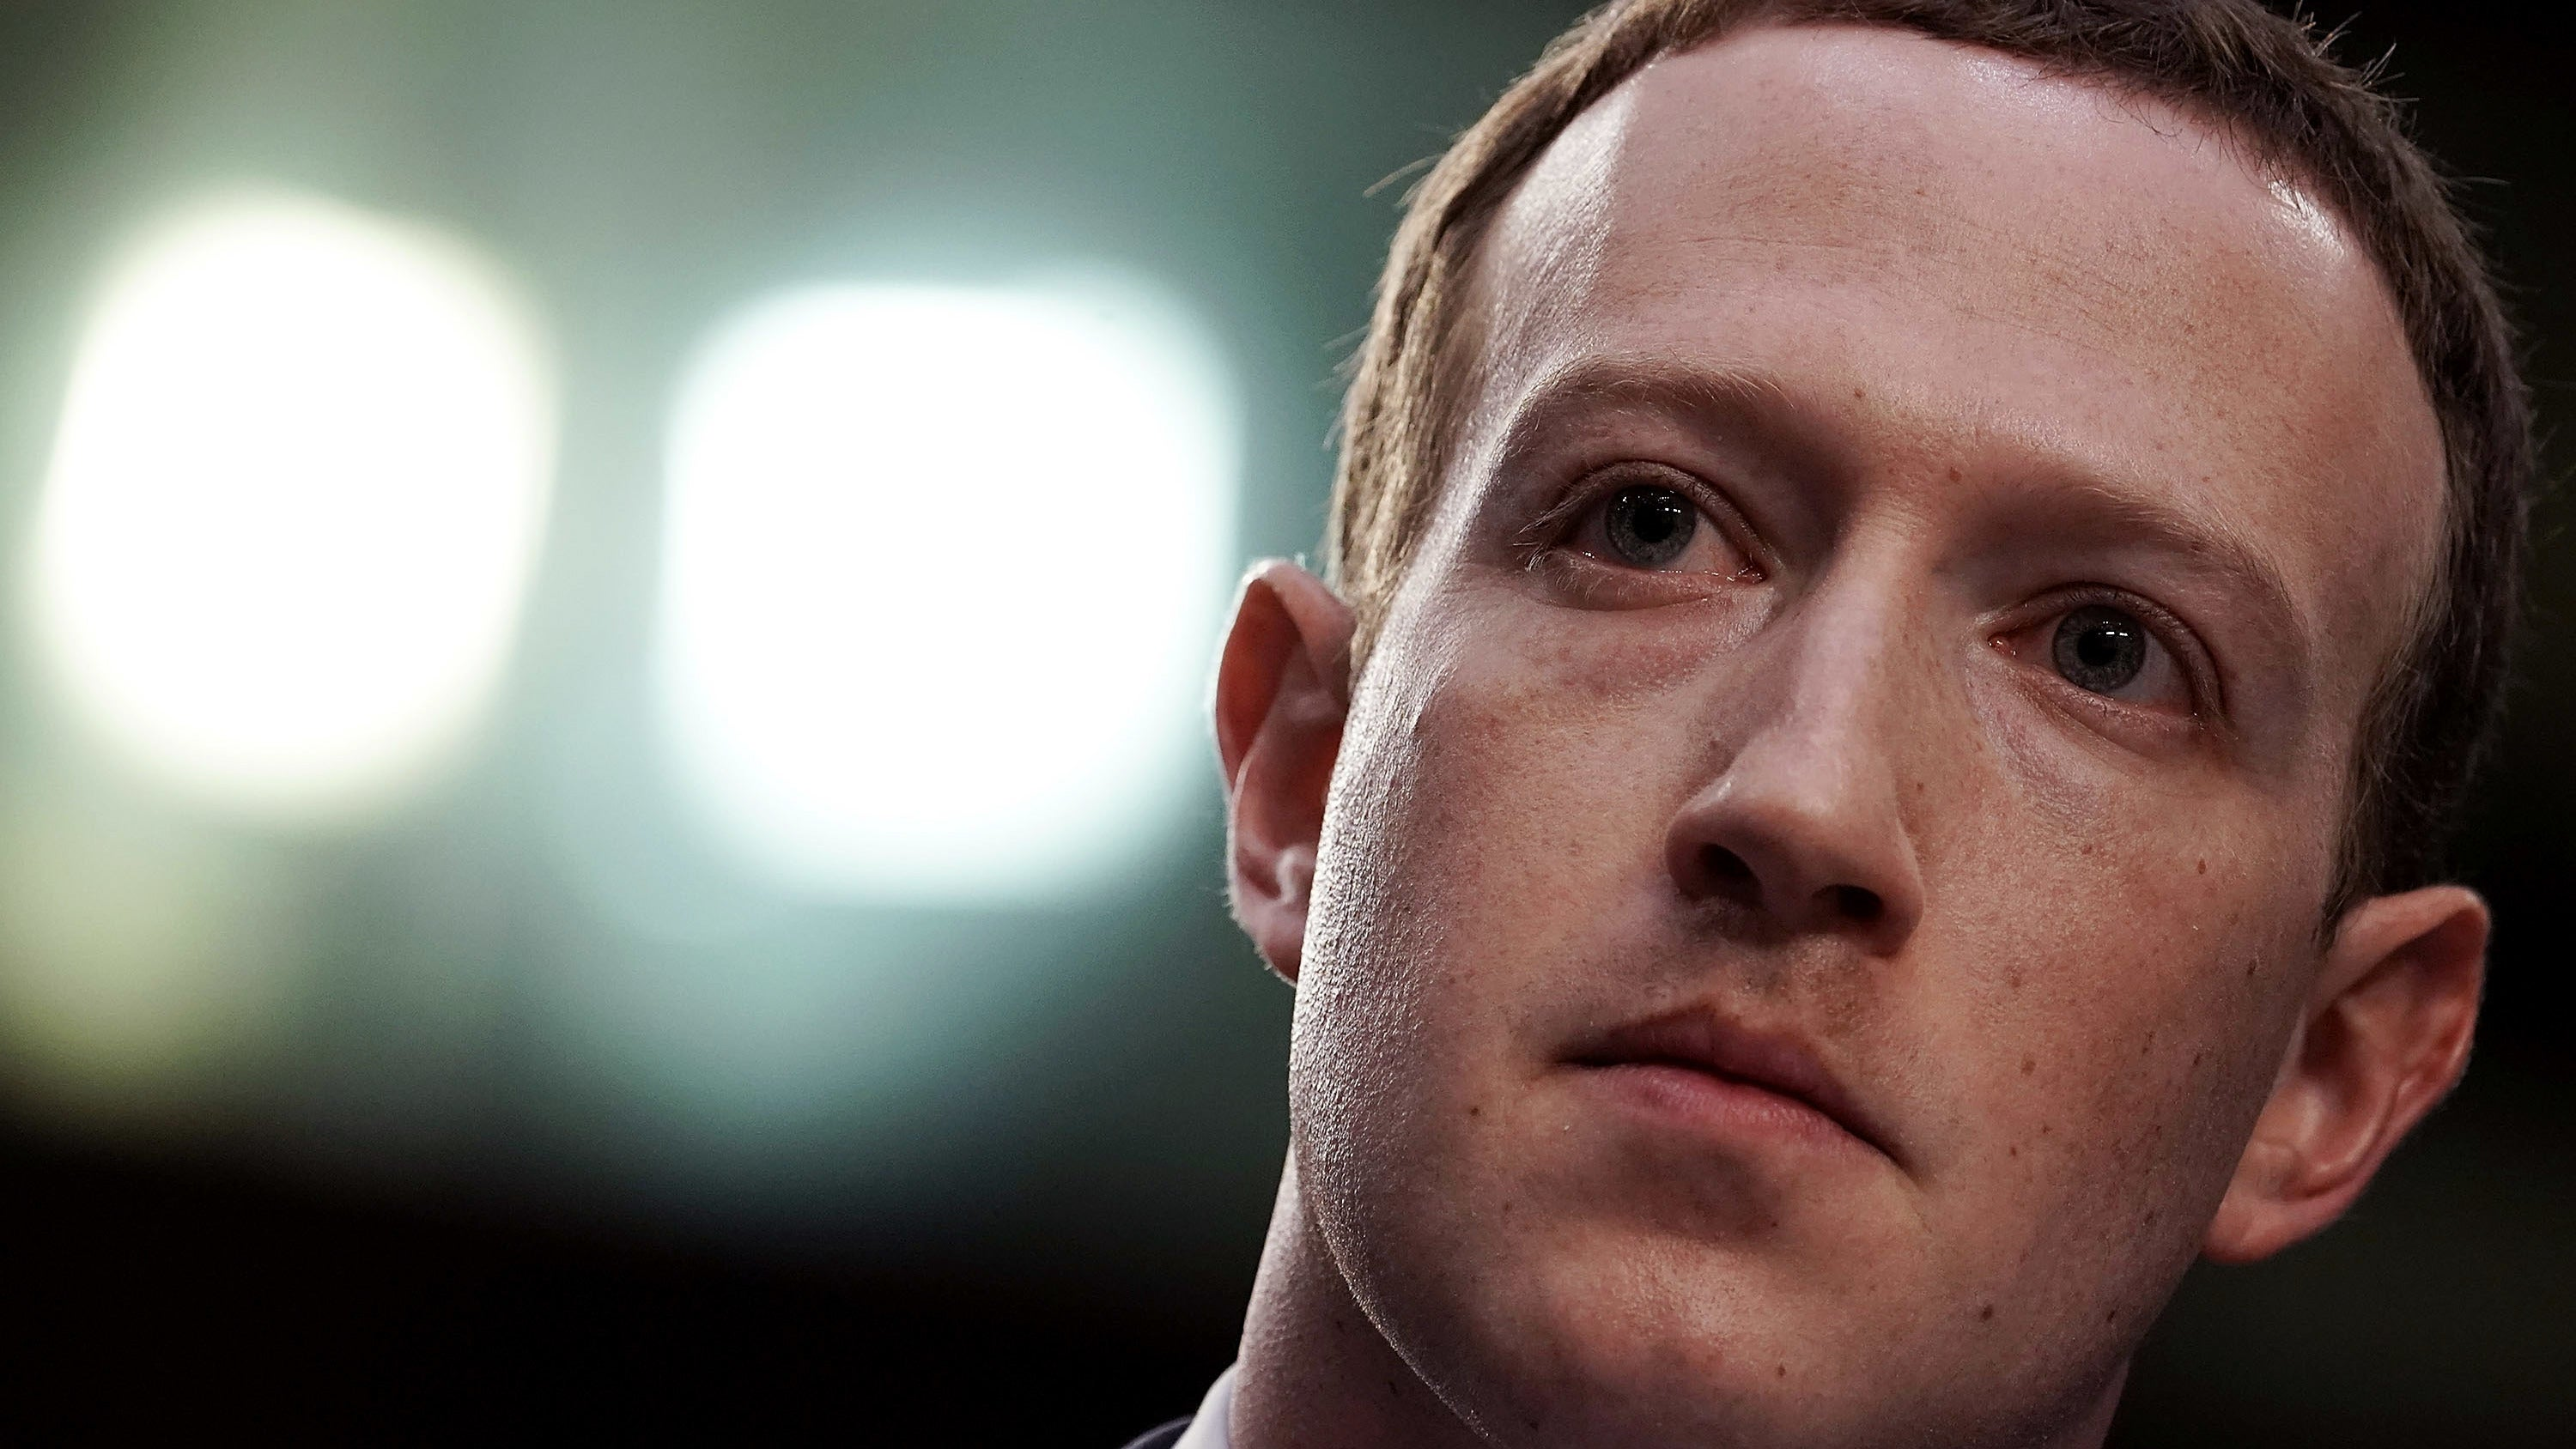 Facebook 'Looking Into' Palantir's Access To User Data Harvested By Cambridge Analytica